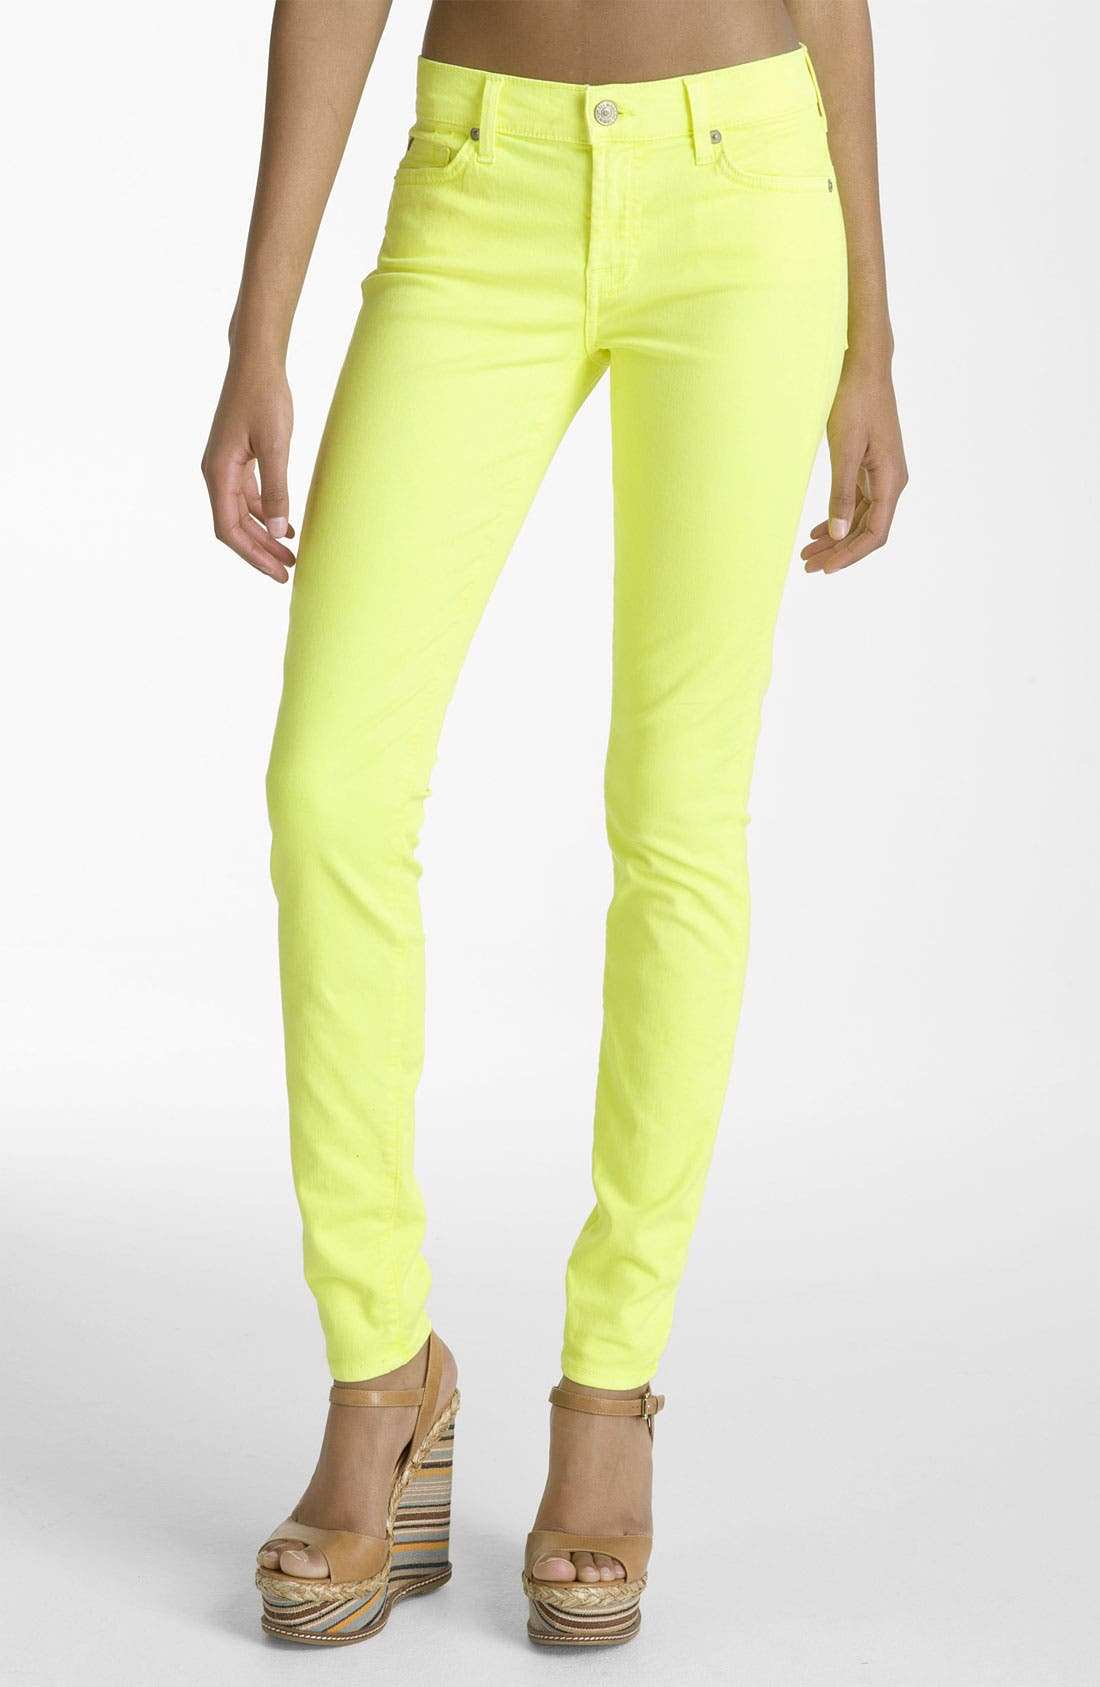 Alternate Image 1 Selected - 7 For All Mankind® 'The Skinny' Overdyed Jeans (Neon Citron Wash)